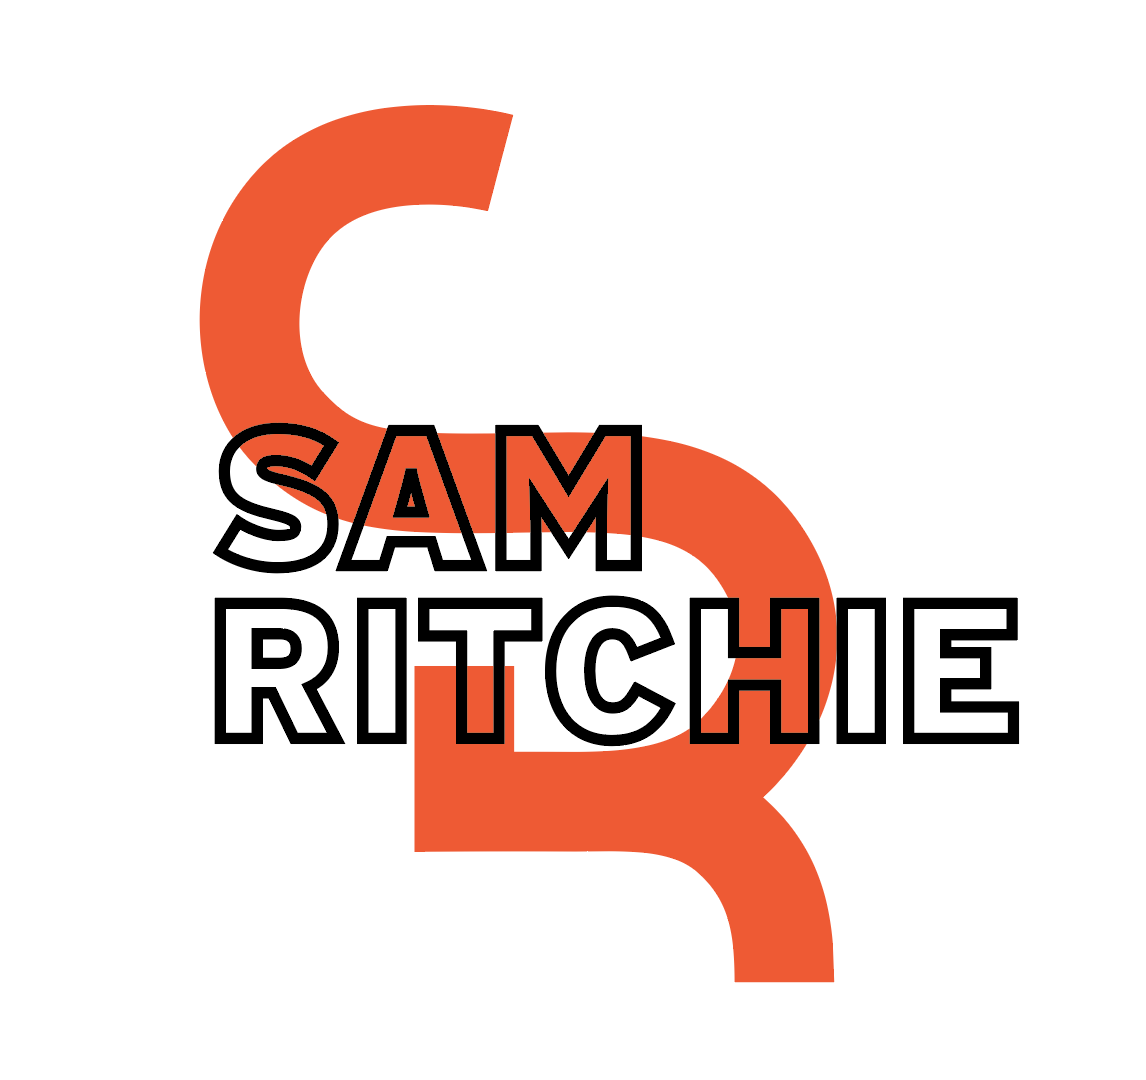 Sam Ritchie